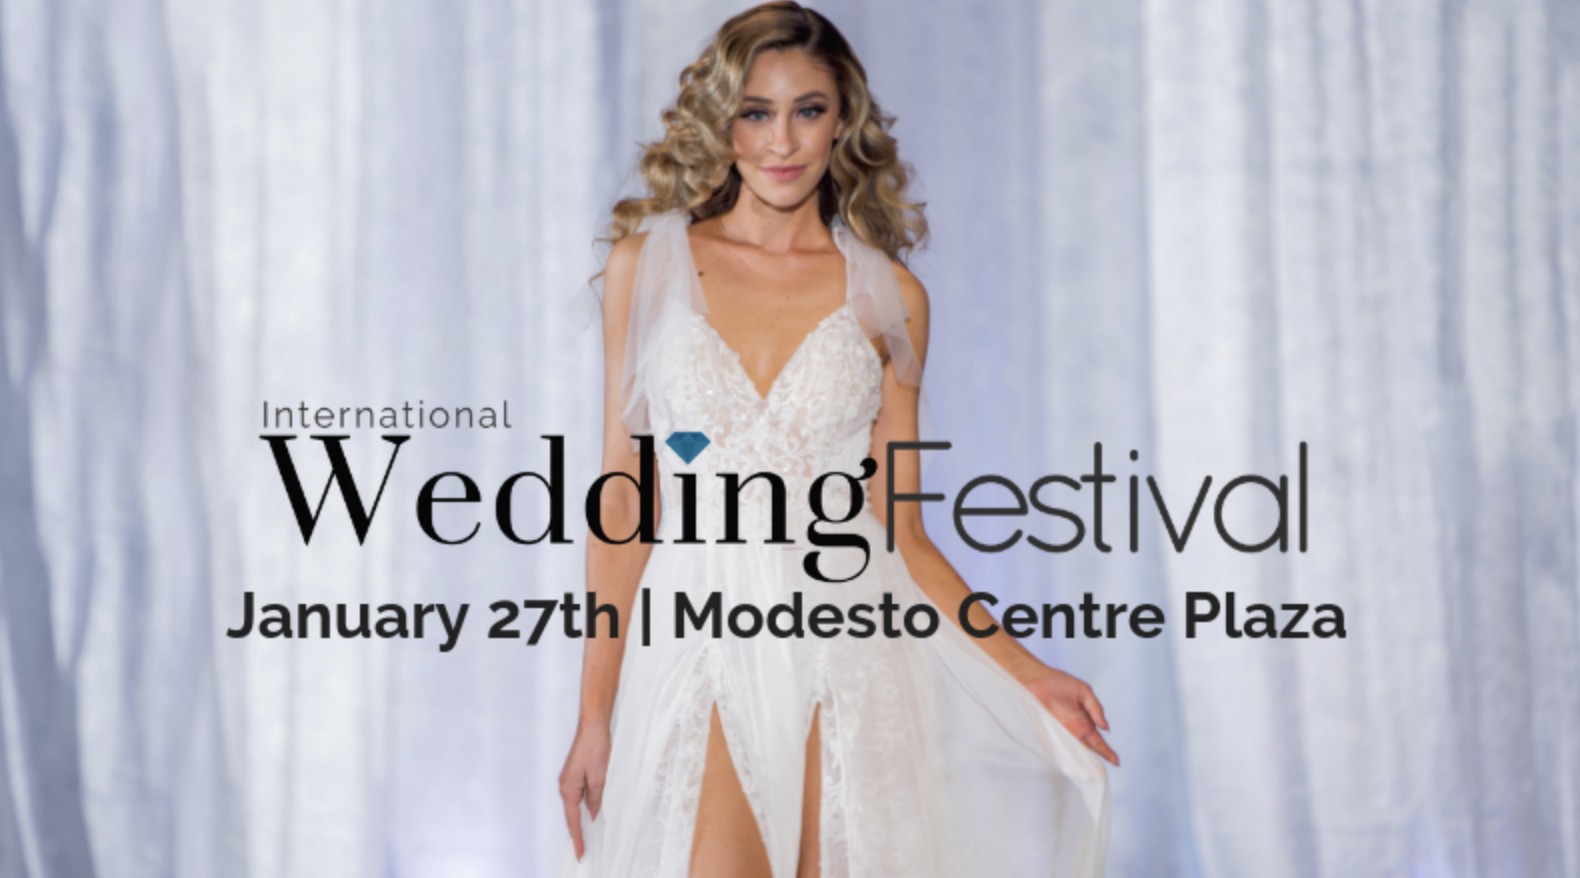 International Wedding Festival - Join us at the Modesto Center Plaza on January 27, 2019!